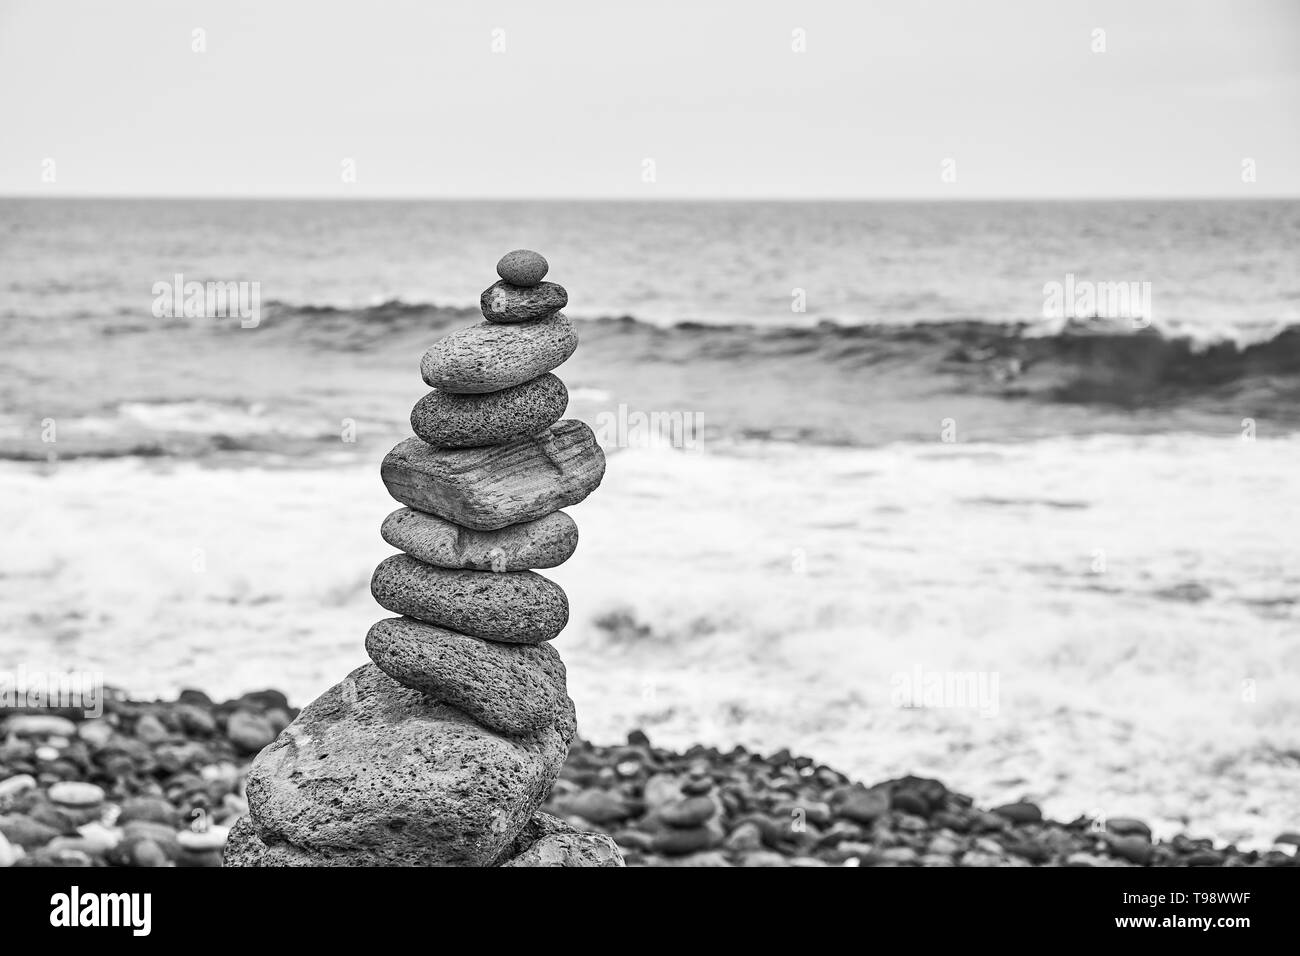 Black and white picture of a stone stack on a beach